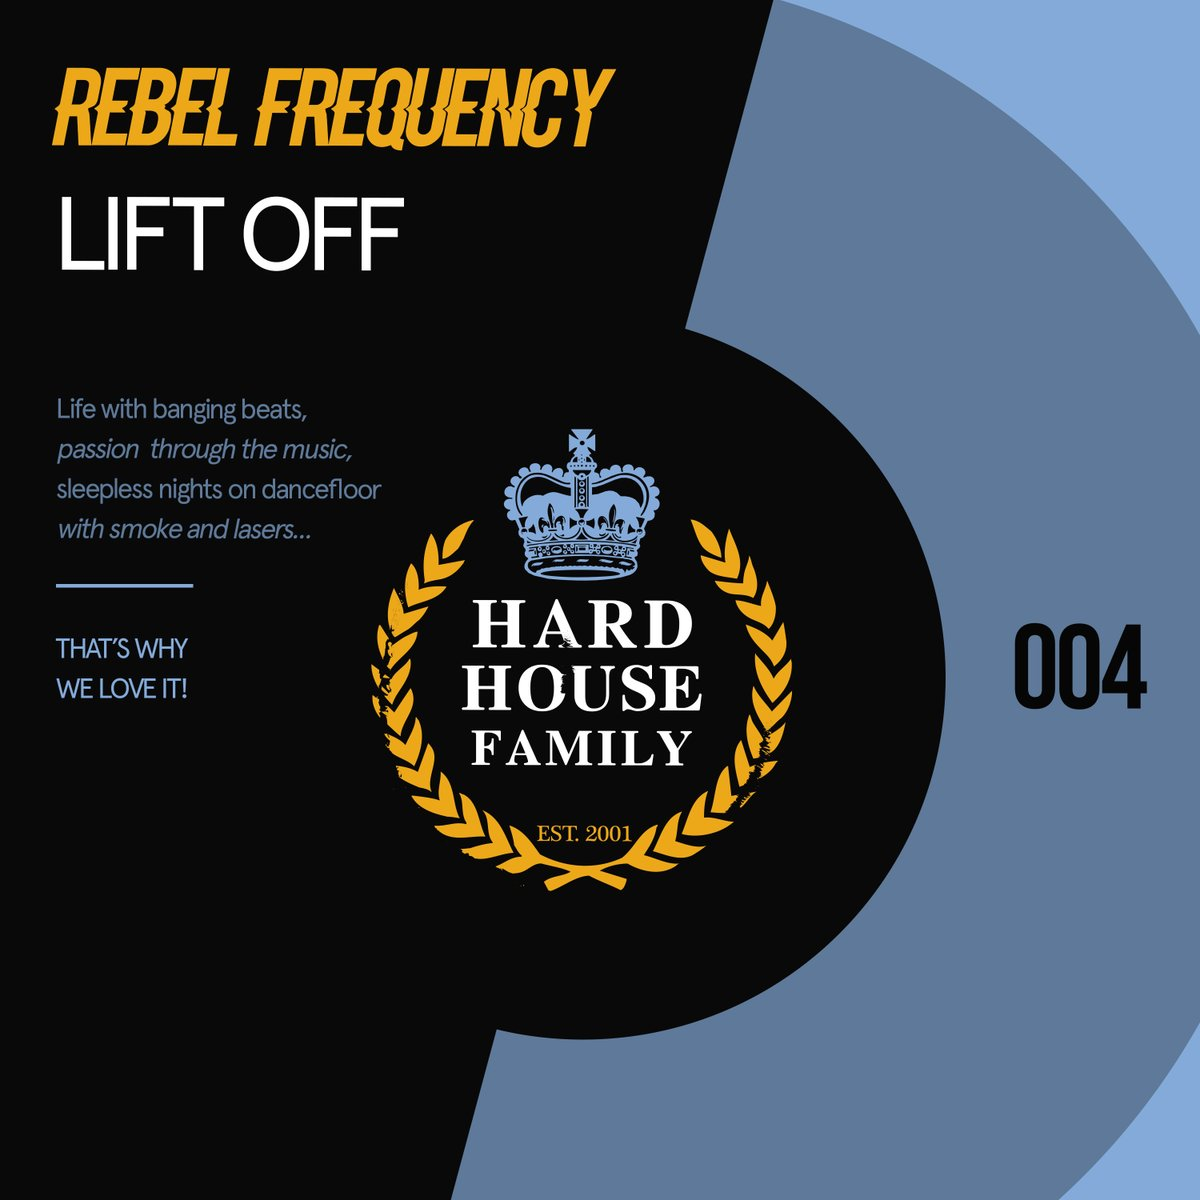 The latest Hard House Family release 'Lift Off' from Rebel Frequency is available now exclusively at Toolbox Digital!  Check it out here: https://t.co/Z9epOkvadl  #hardhouse #harddance #toolboxdigital #newrelease #newmusic #hardhousefamily https://t.co/t0pKv1PPHV